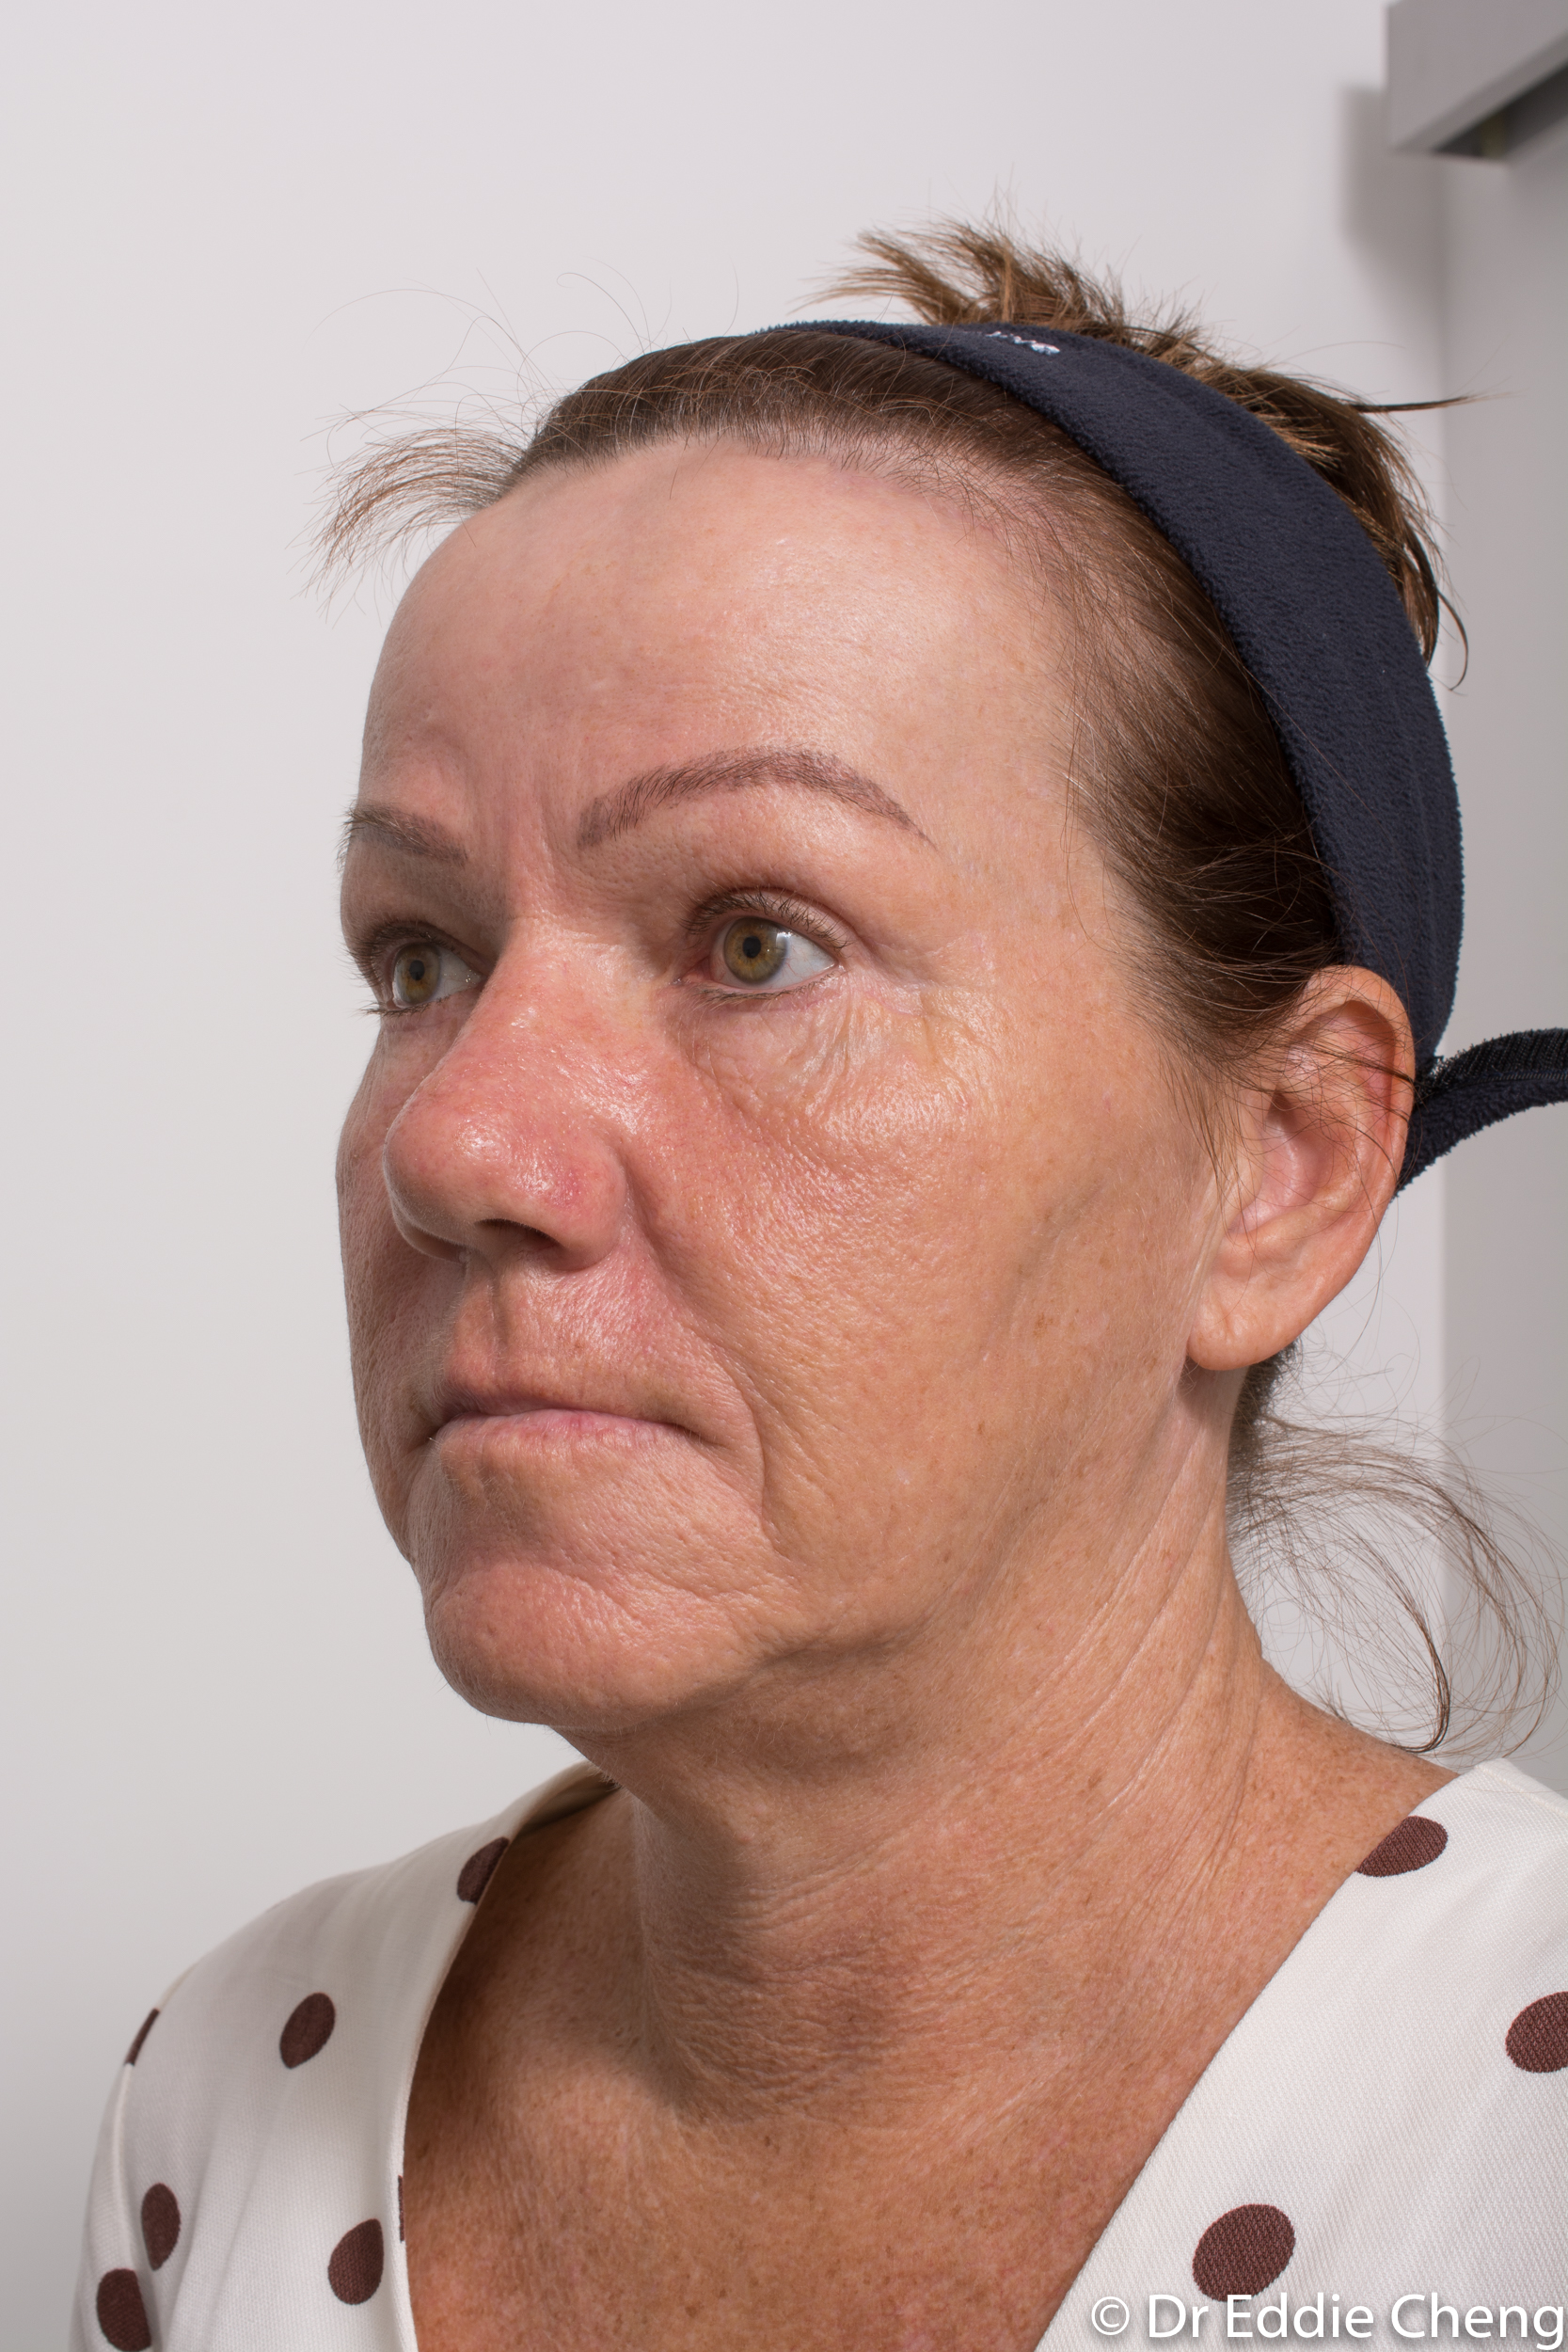 Brow lift dr eddie cheng blepharoplasty pre and post operative brisbane surgeon -7-2